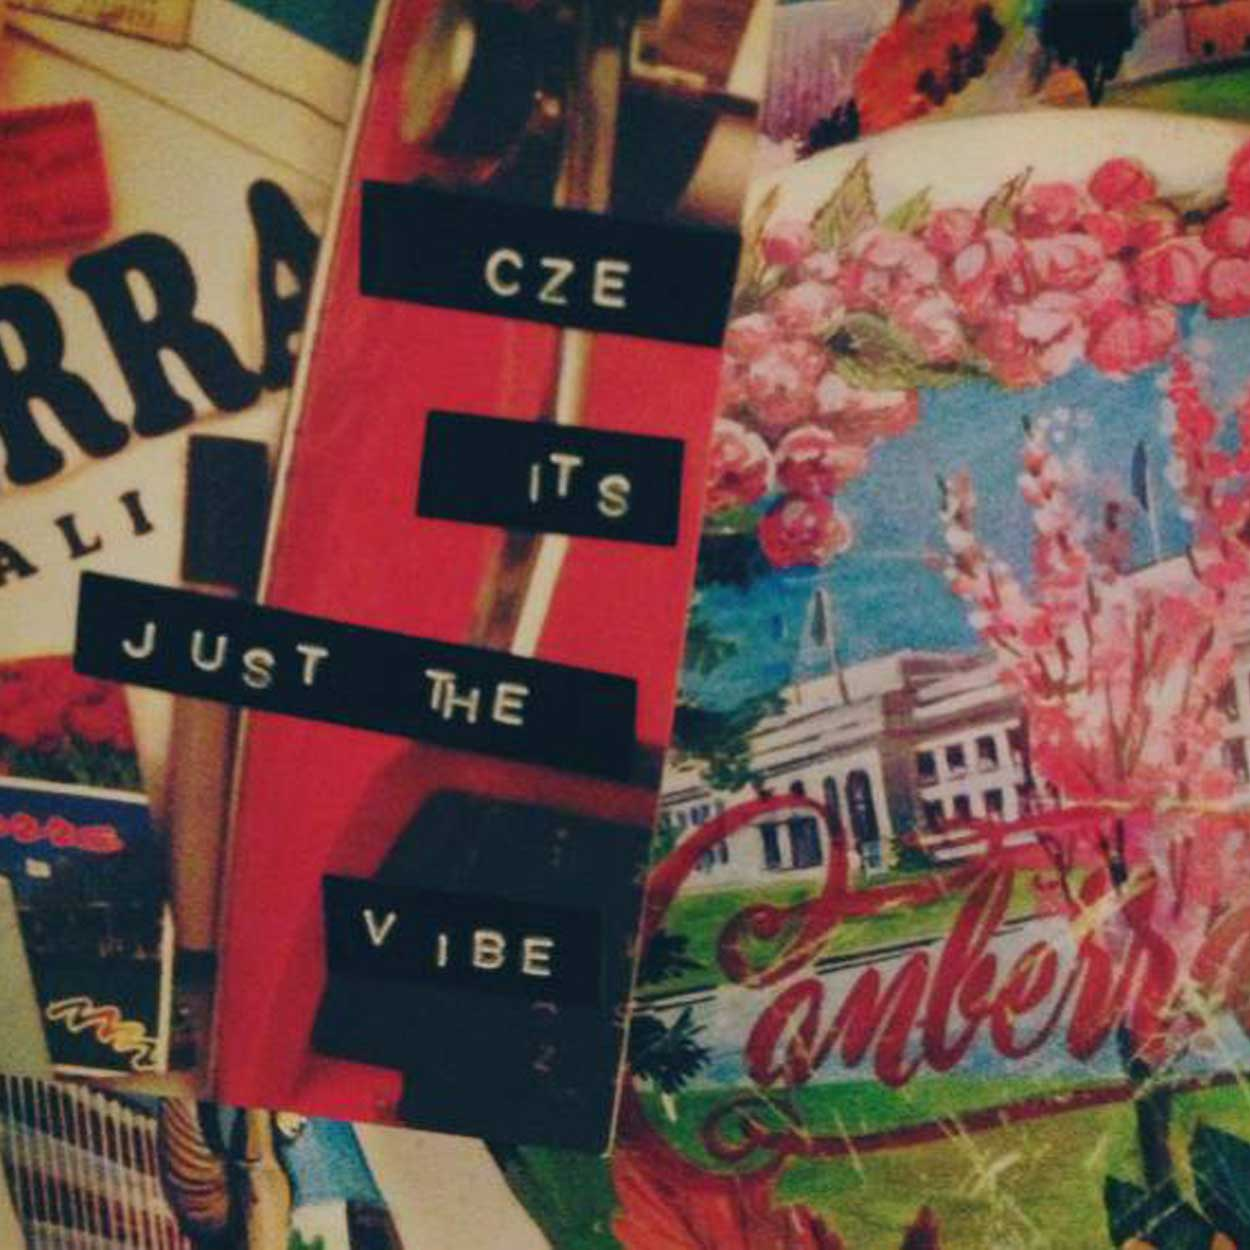 Canberra Zine Emporium  sells a bunch of zines and comics through their zine vending machine as well as at zine fairs and stalls at community events. Most of their stock is from Canberra, but they also have submissions from around the country. Personal stories, political perspectives, public service humour and weird paranoid rants - they've got it all.  Find out more here.